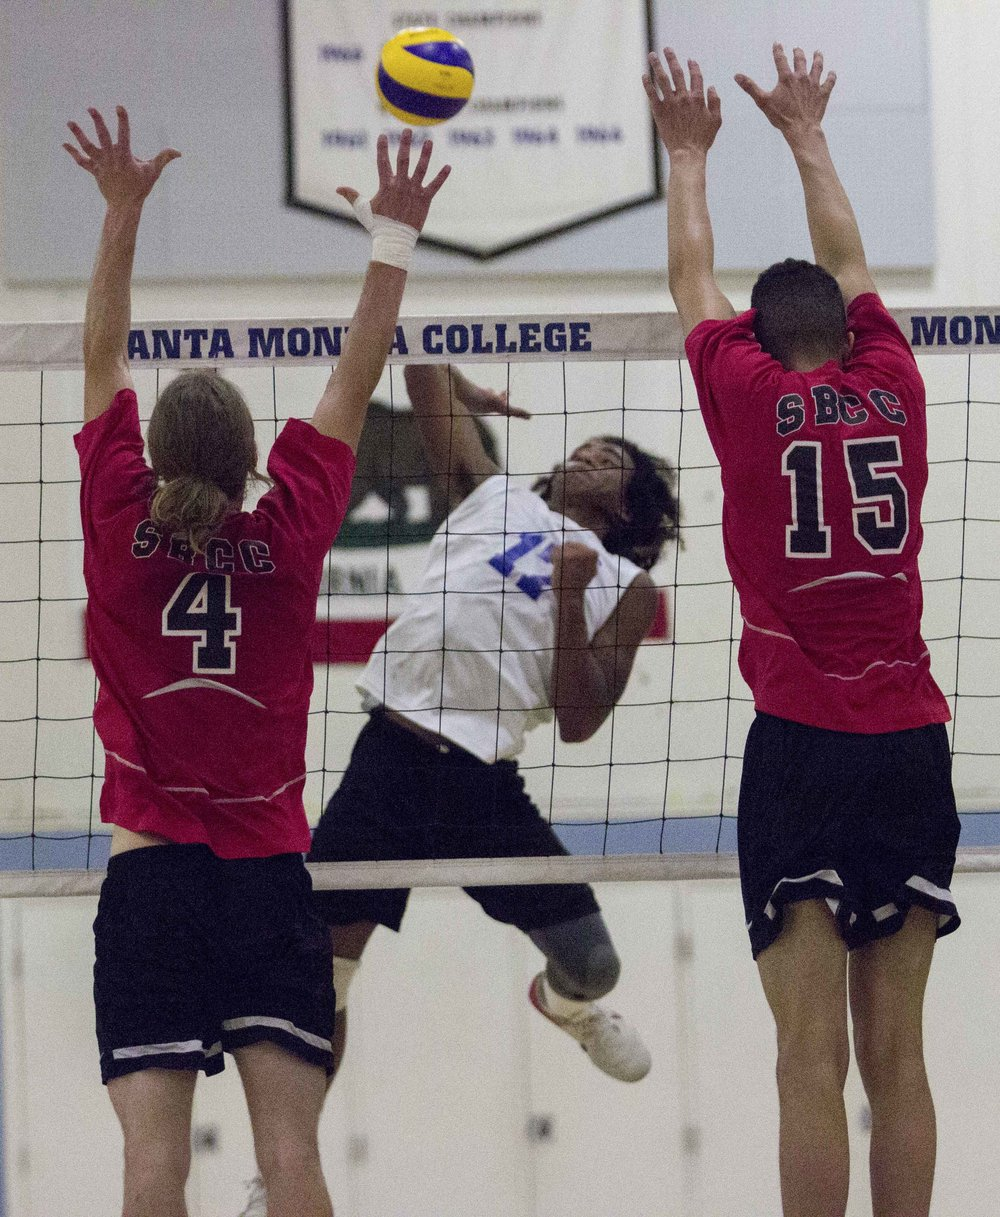 Santa Monica College Corsairs freshman outside hitter Dane Pieper (17, center) attempts to split the defense of Santa Barbara City College Vaqueros freshmen middle blockers Stephen Trevitt (4, left) and Jarrett Futch (15, right) as part of the Corsairs 3-0 victory on March 15, 2017 in the Santa Monica College Gymnasium at Santa Monica College in Santa Monica California (Photo By: Zane Meyer)